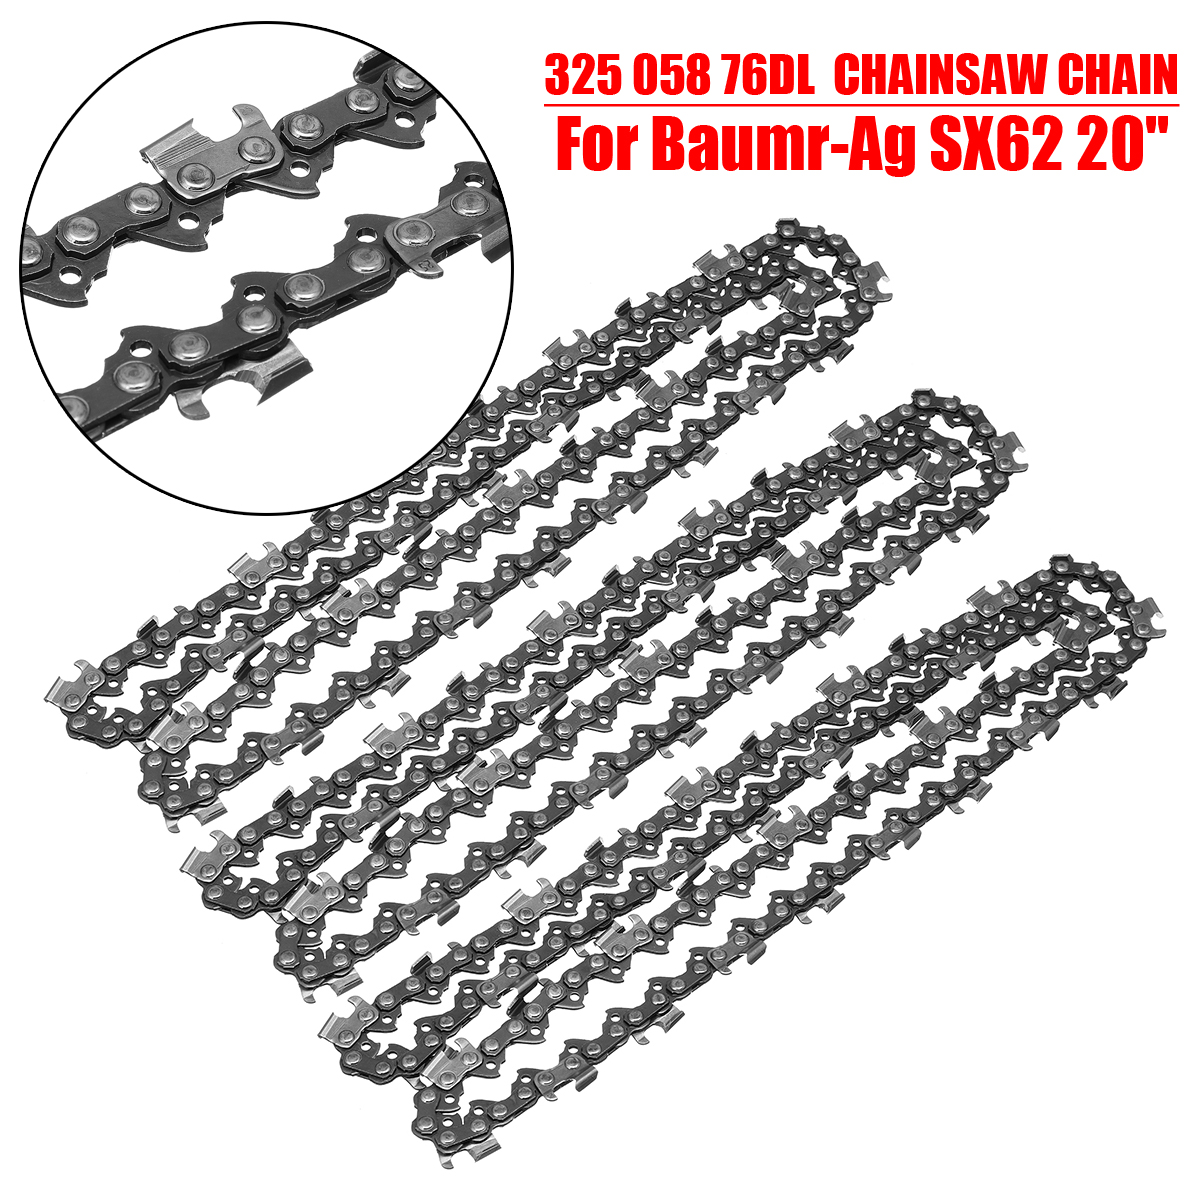 3pcs 20 325 058 76DL Chainsaw Chain Saw Replaces for Baumr-Ag SX62 Electrical Tools Accessories3pcs 20 325 058 76DL Chainsaw Chain Saw Replaces for Baumr-Ag SX62 Electrical Tools Accessories